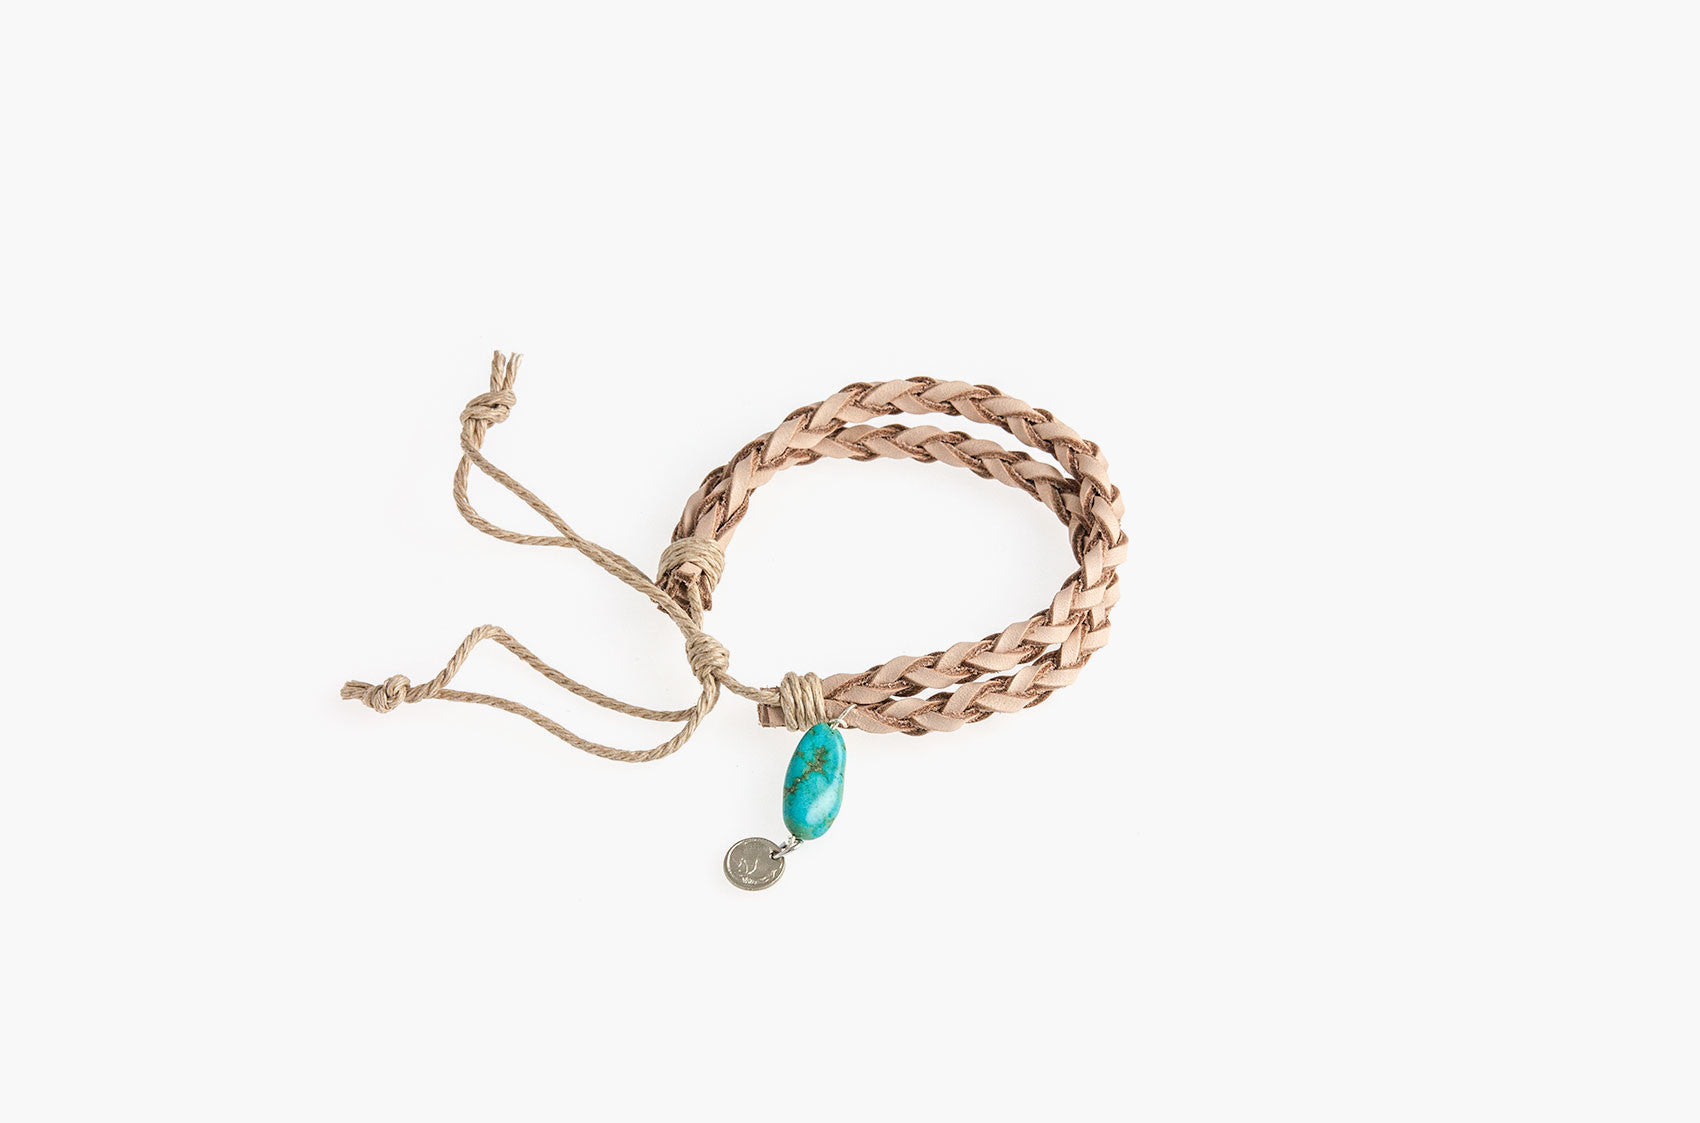 Natural braided leather bracelet with turquoise